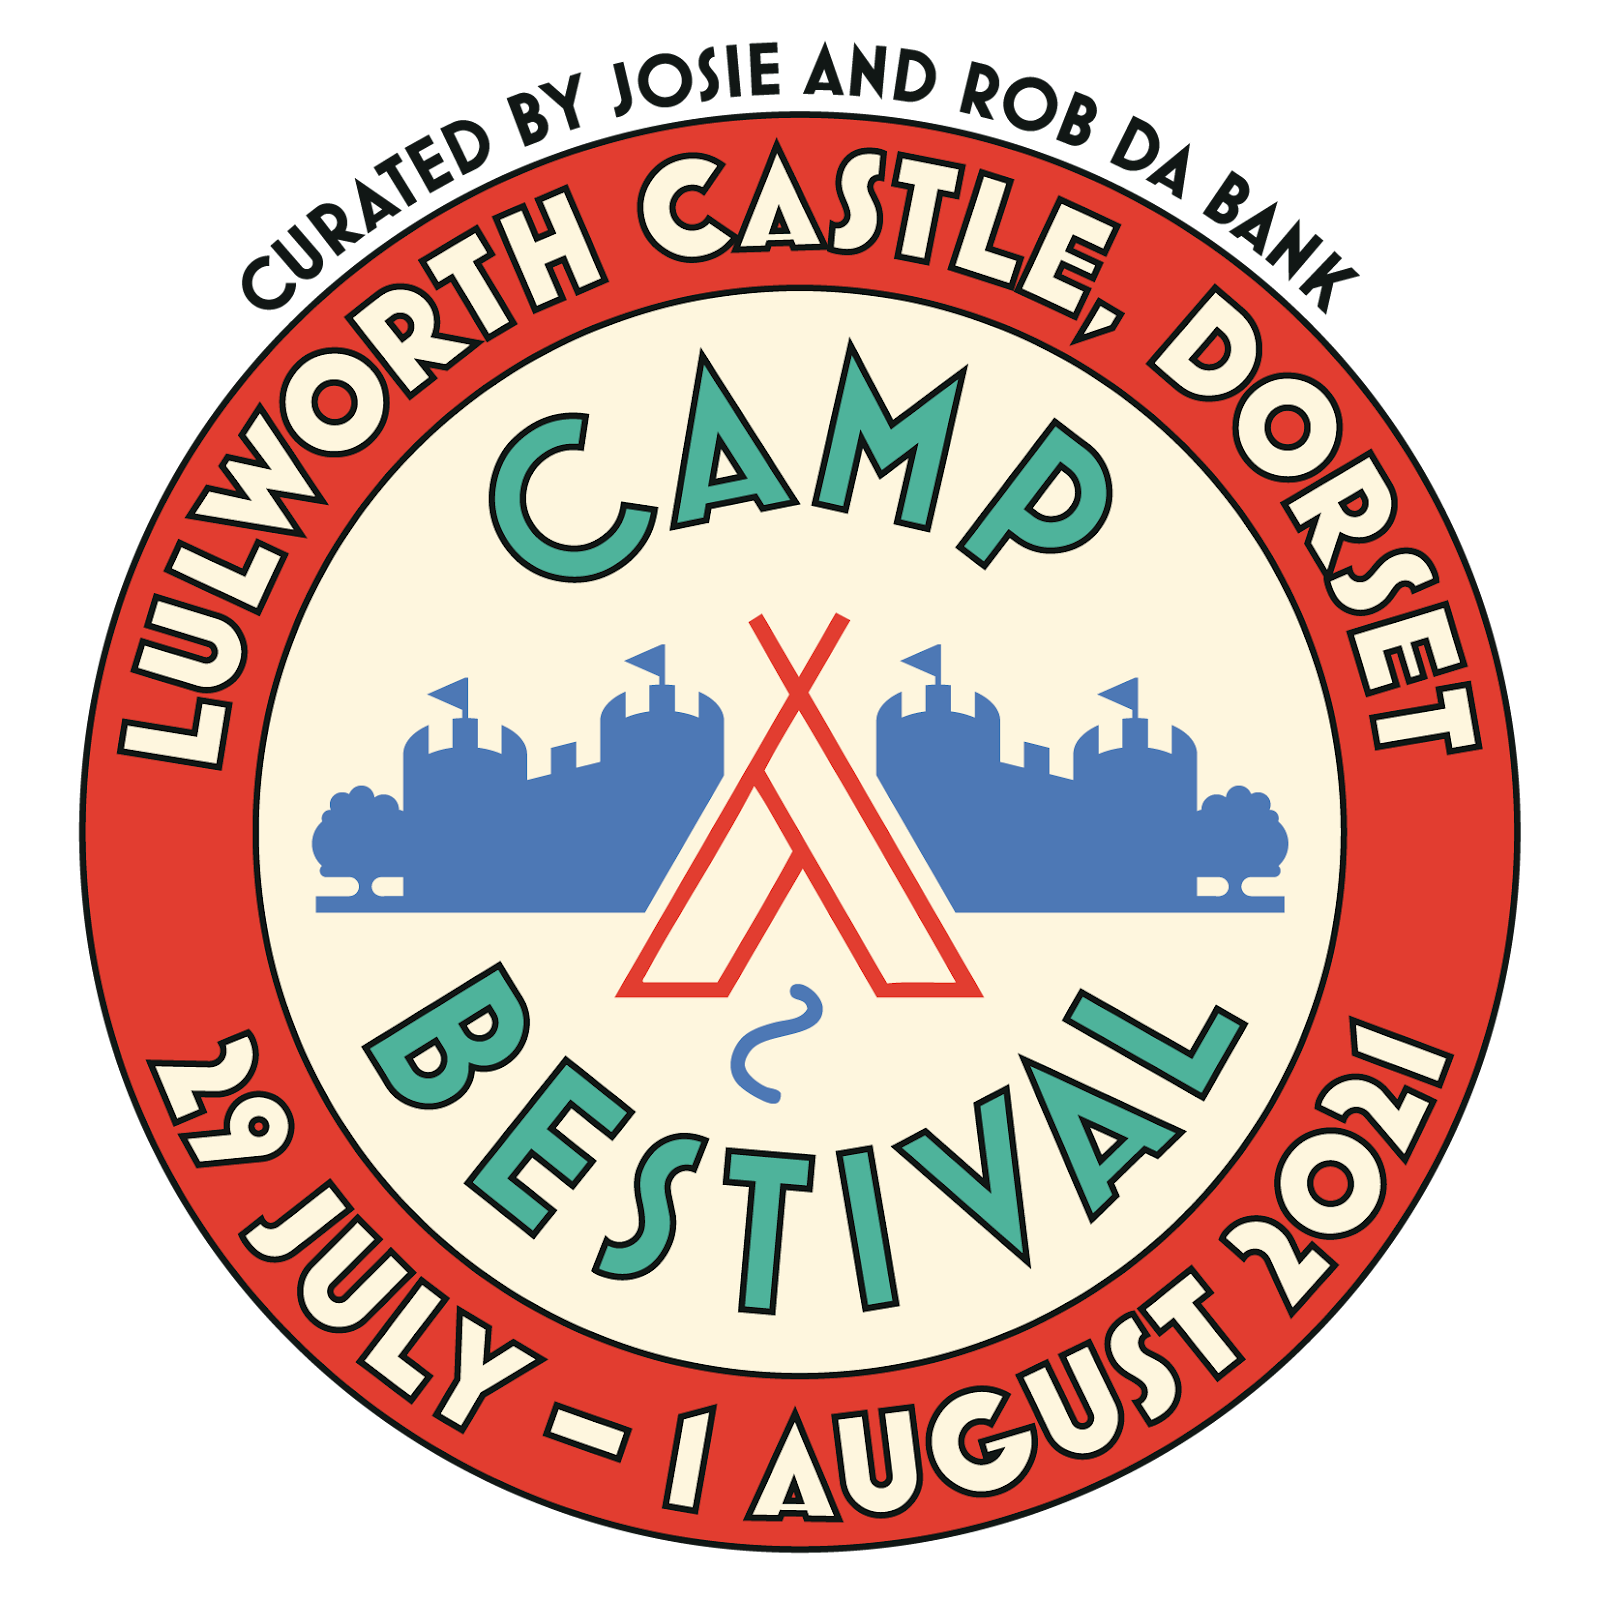 hollow red circle contains silhouette of tent and castle with camp bestival text in green